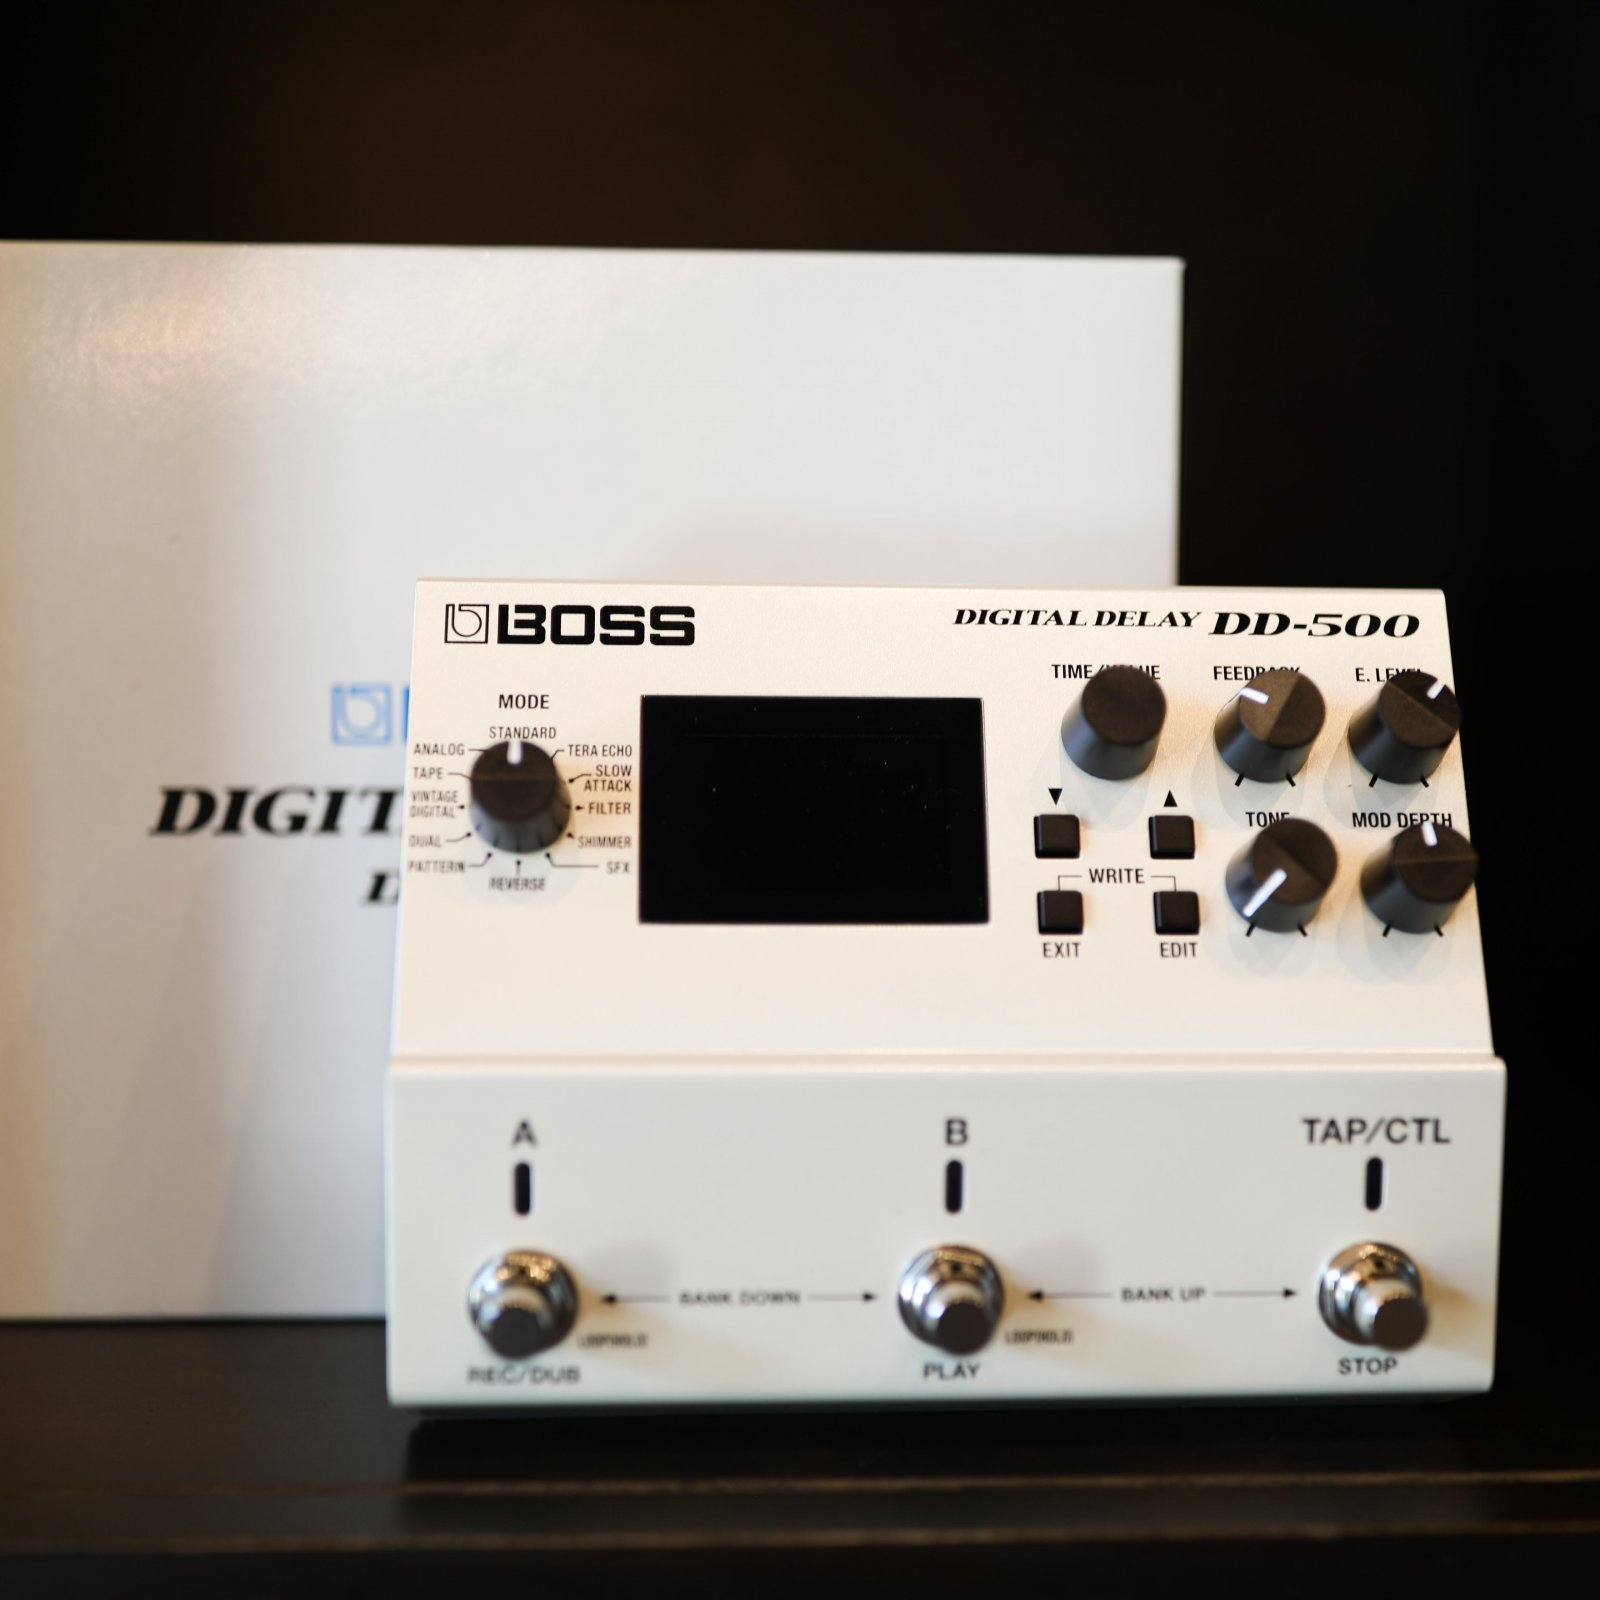 USED - BOSS DD-500 Digital Delay Pedal - (Consignment)